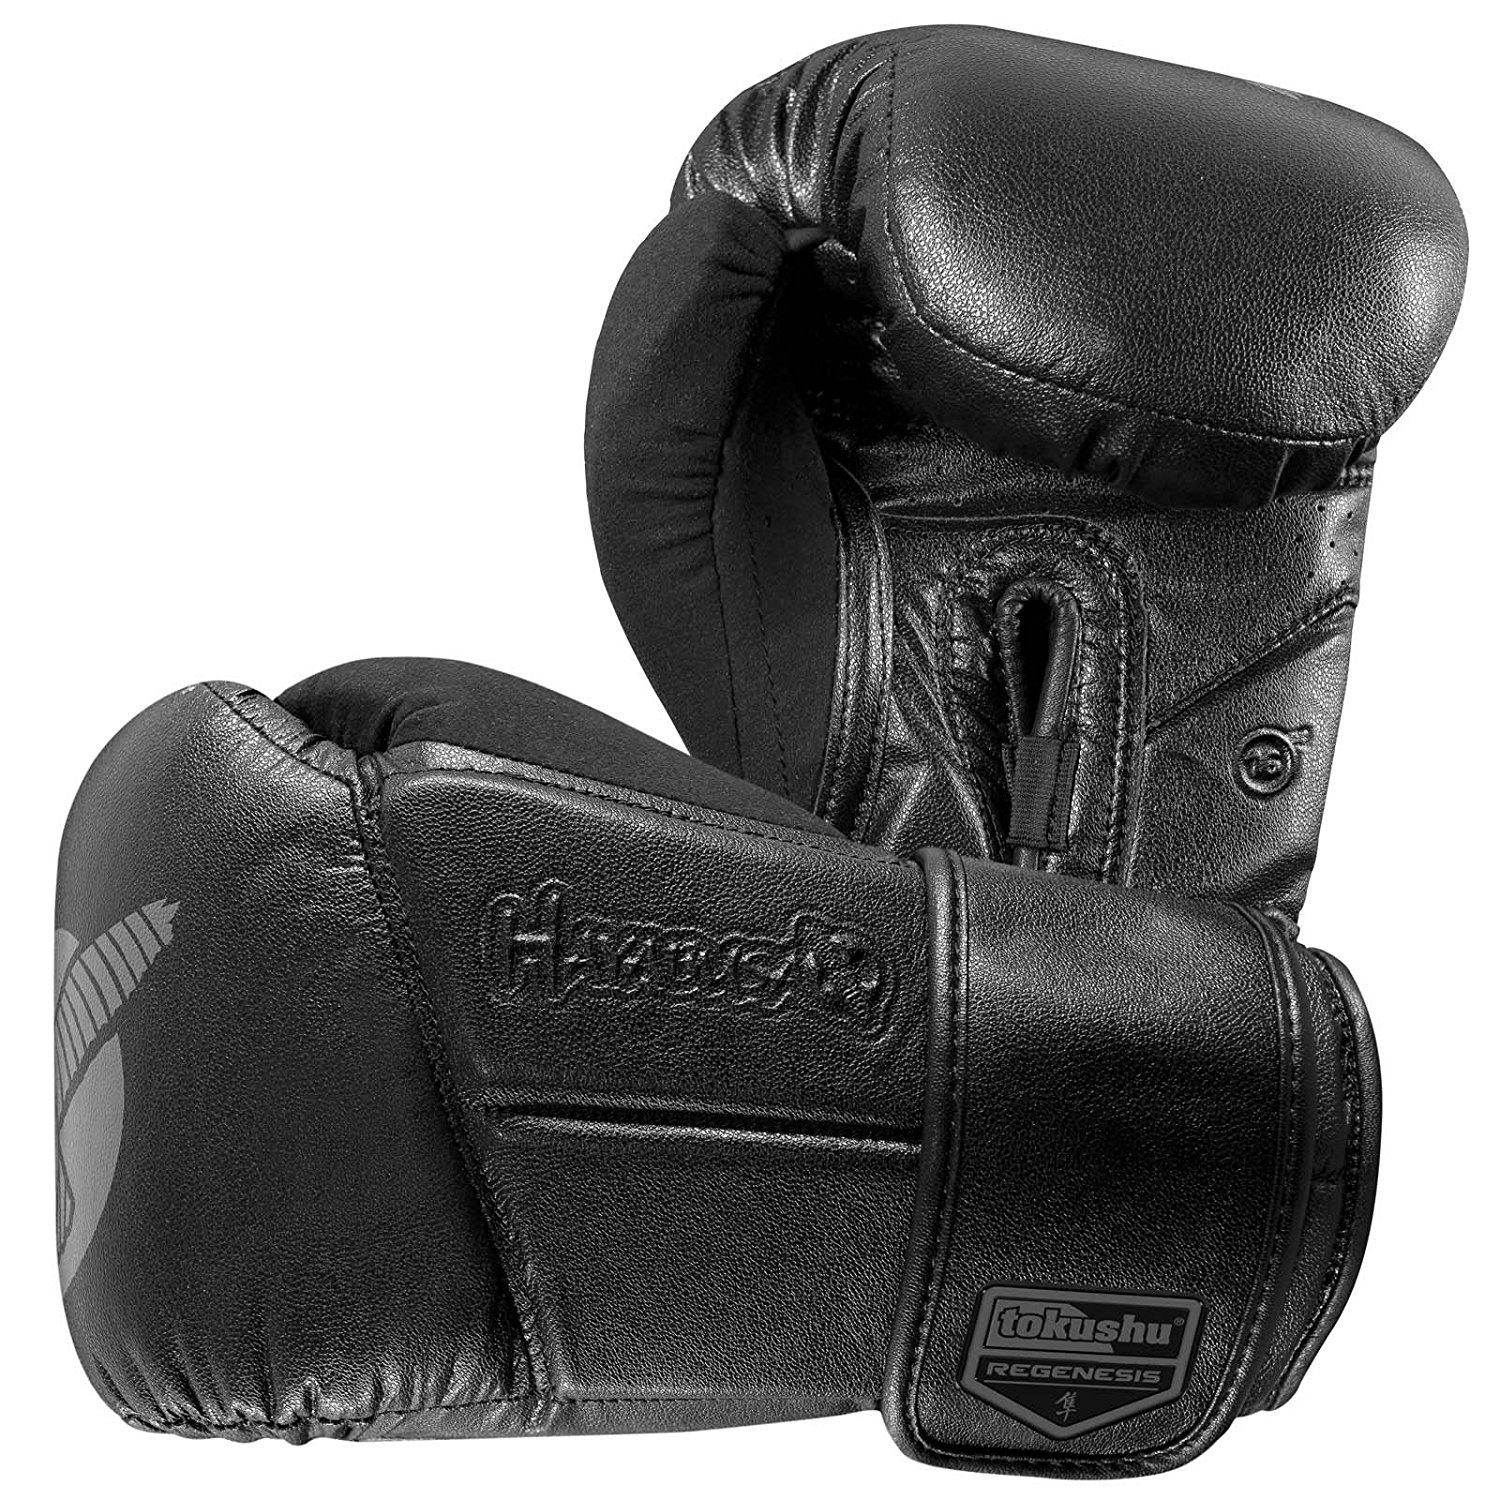 Best Bag Gloves - Hayabusa Fightwear